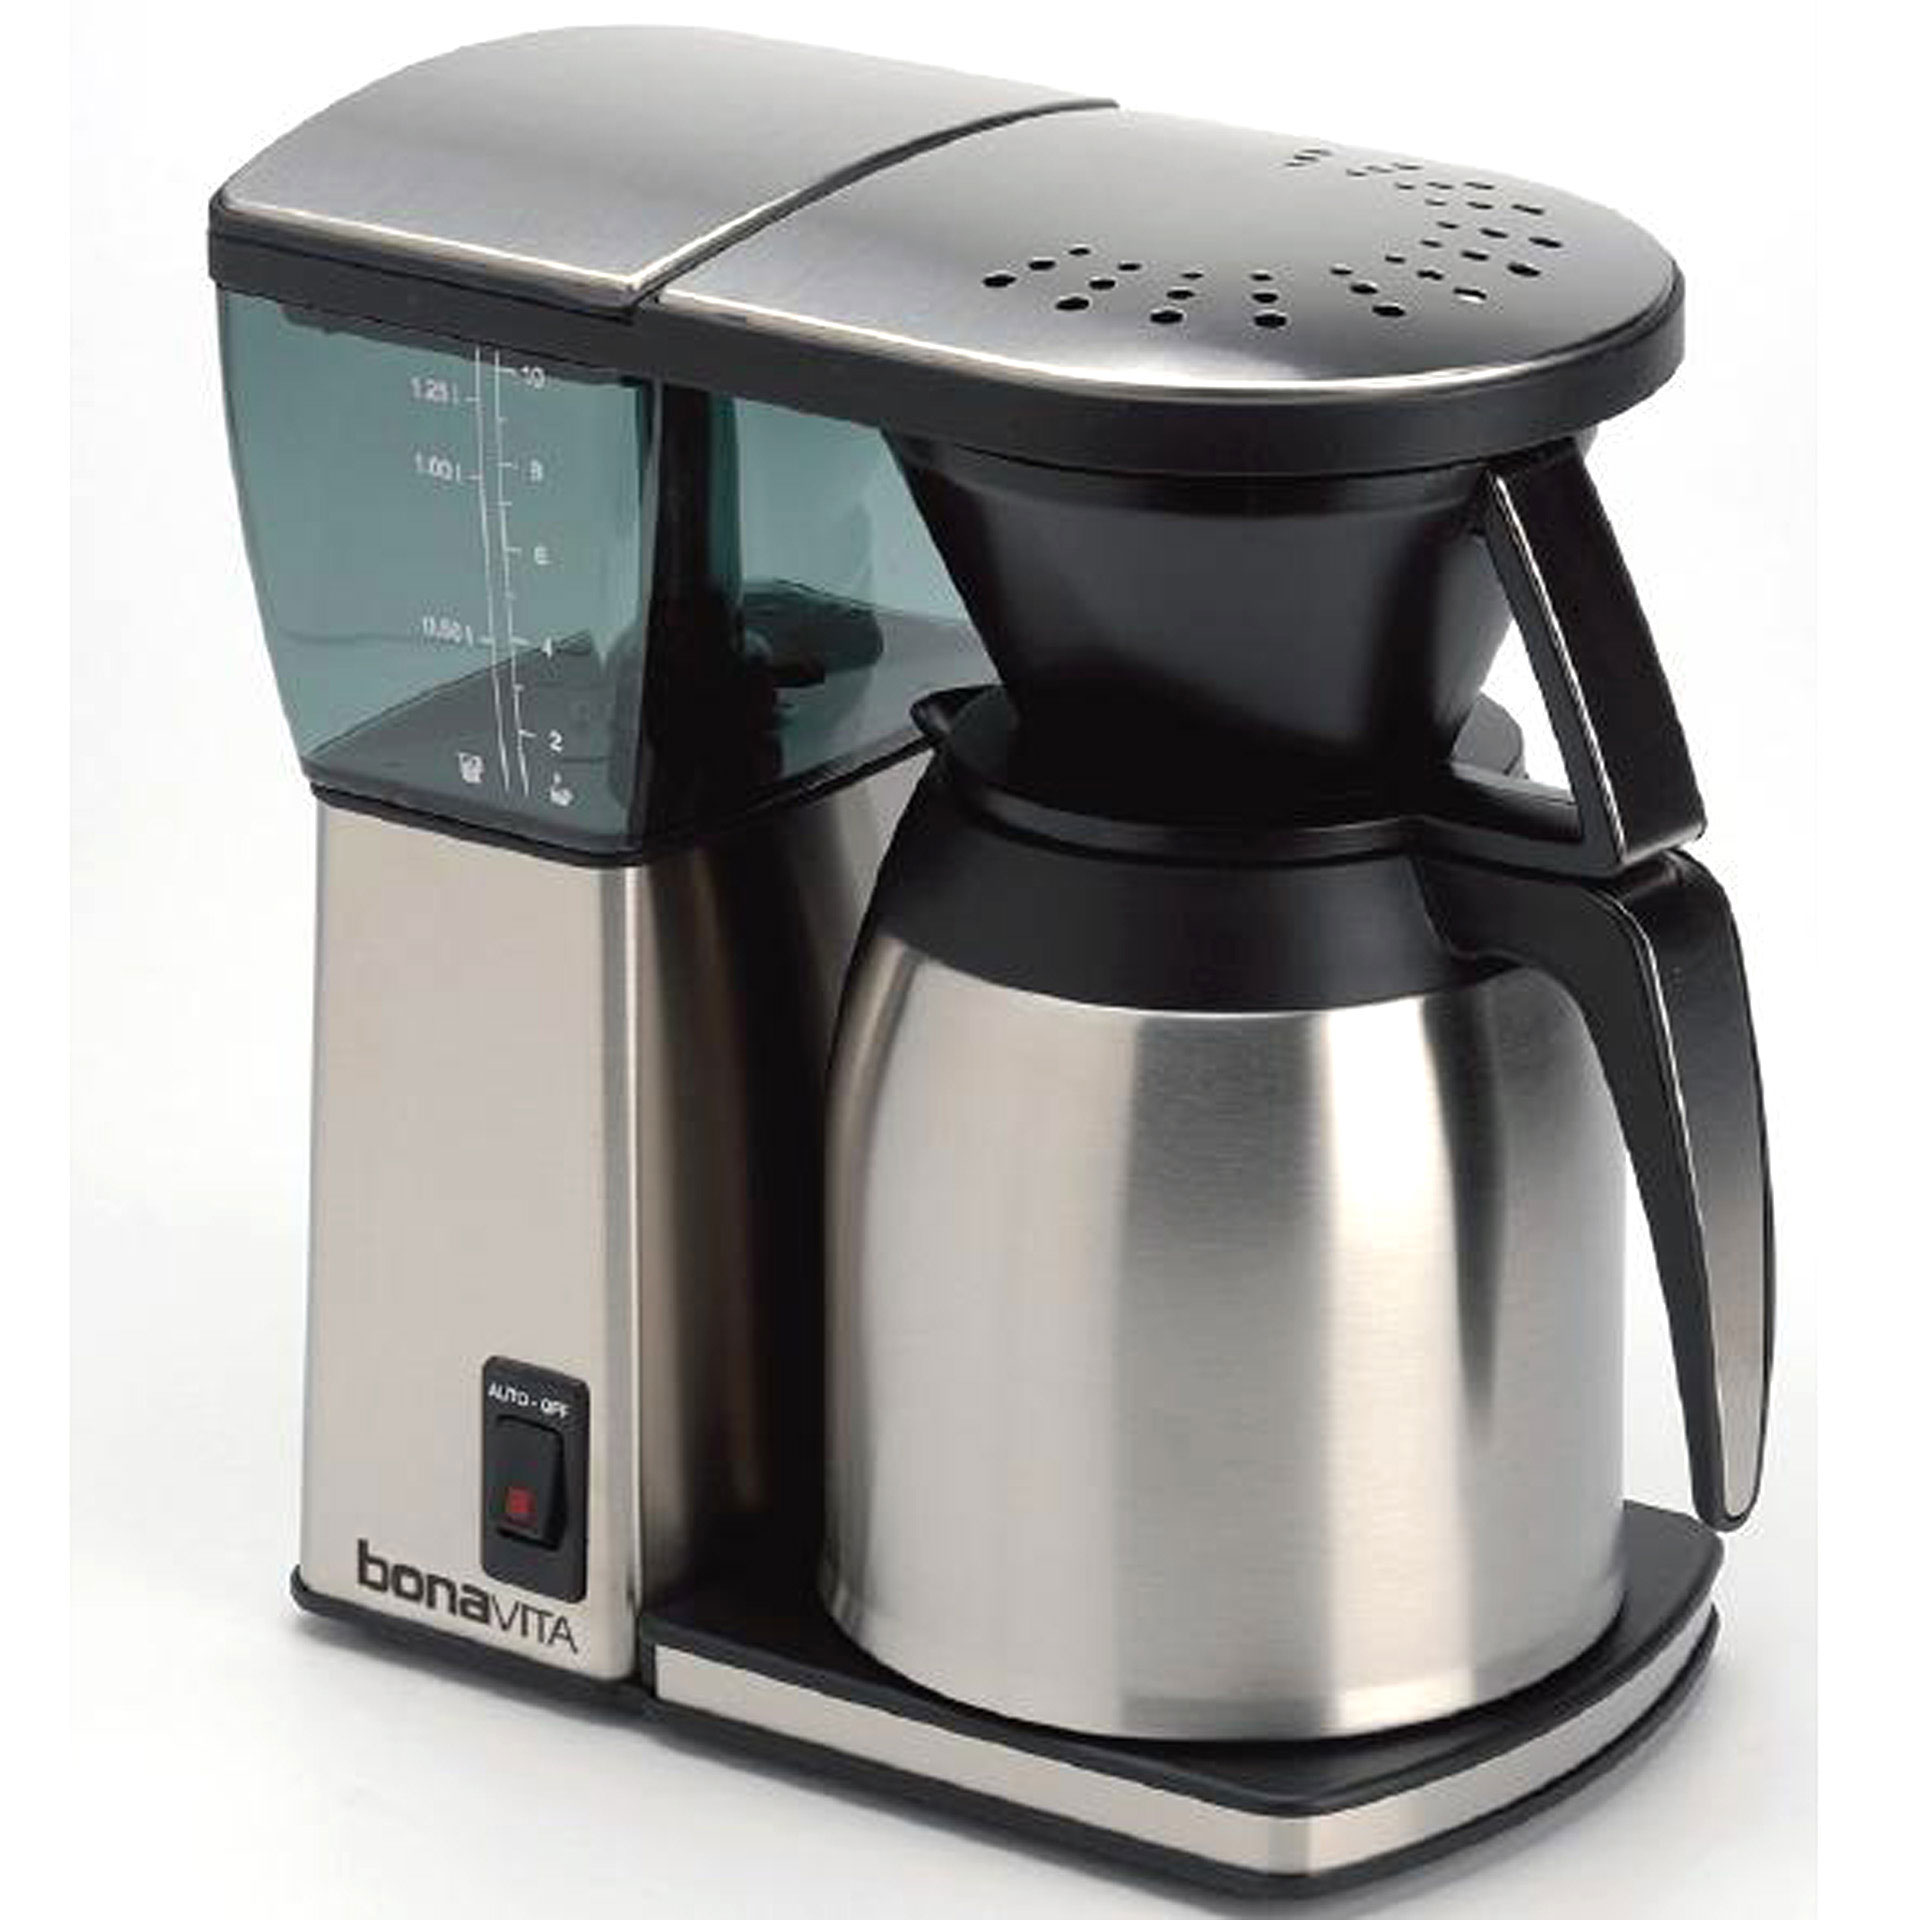 Bonavita 8-Cup Coffee Brewer With Thermal Carafe #BV 1800TH Review